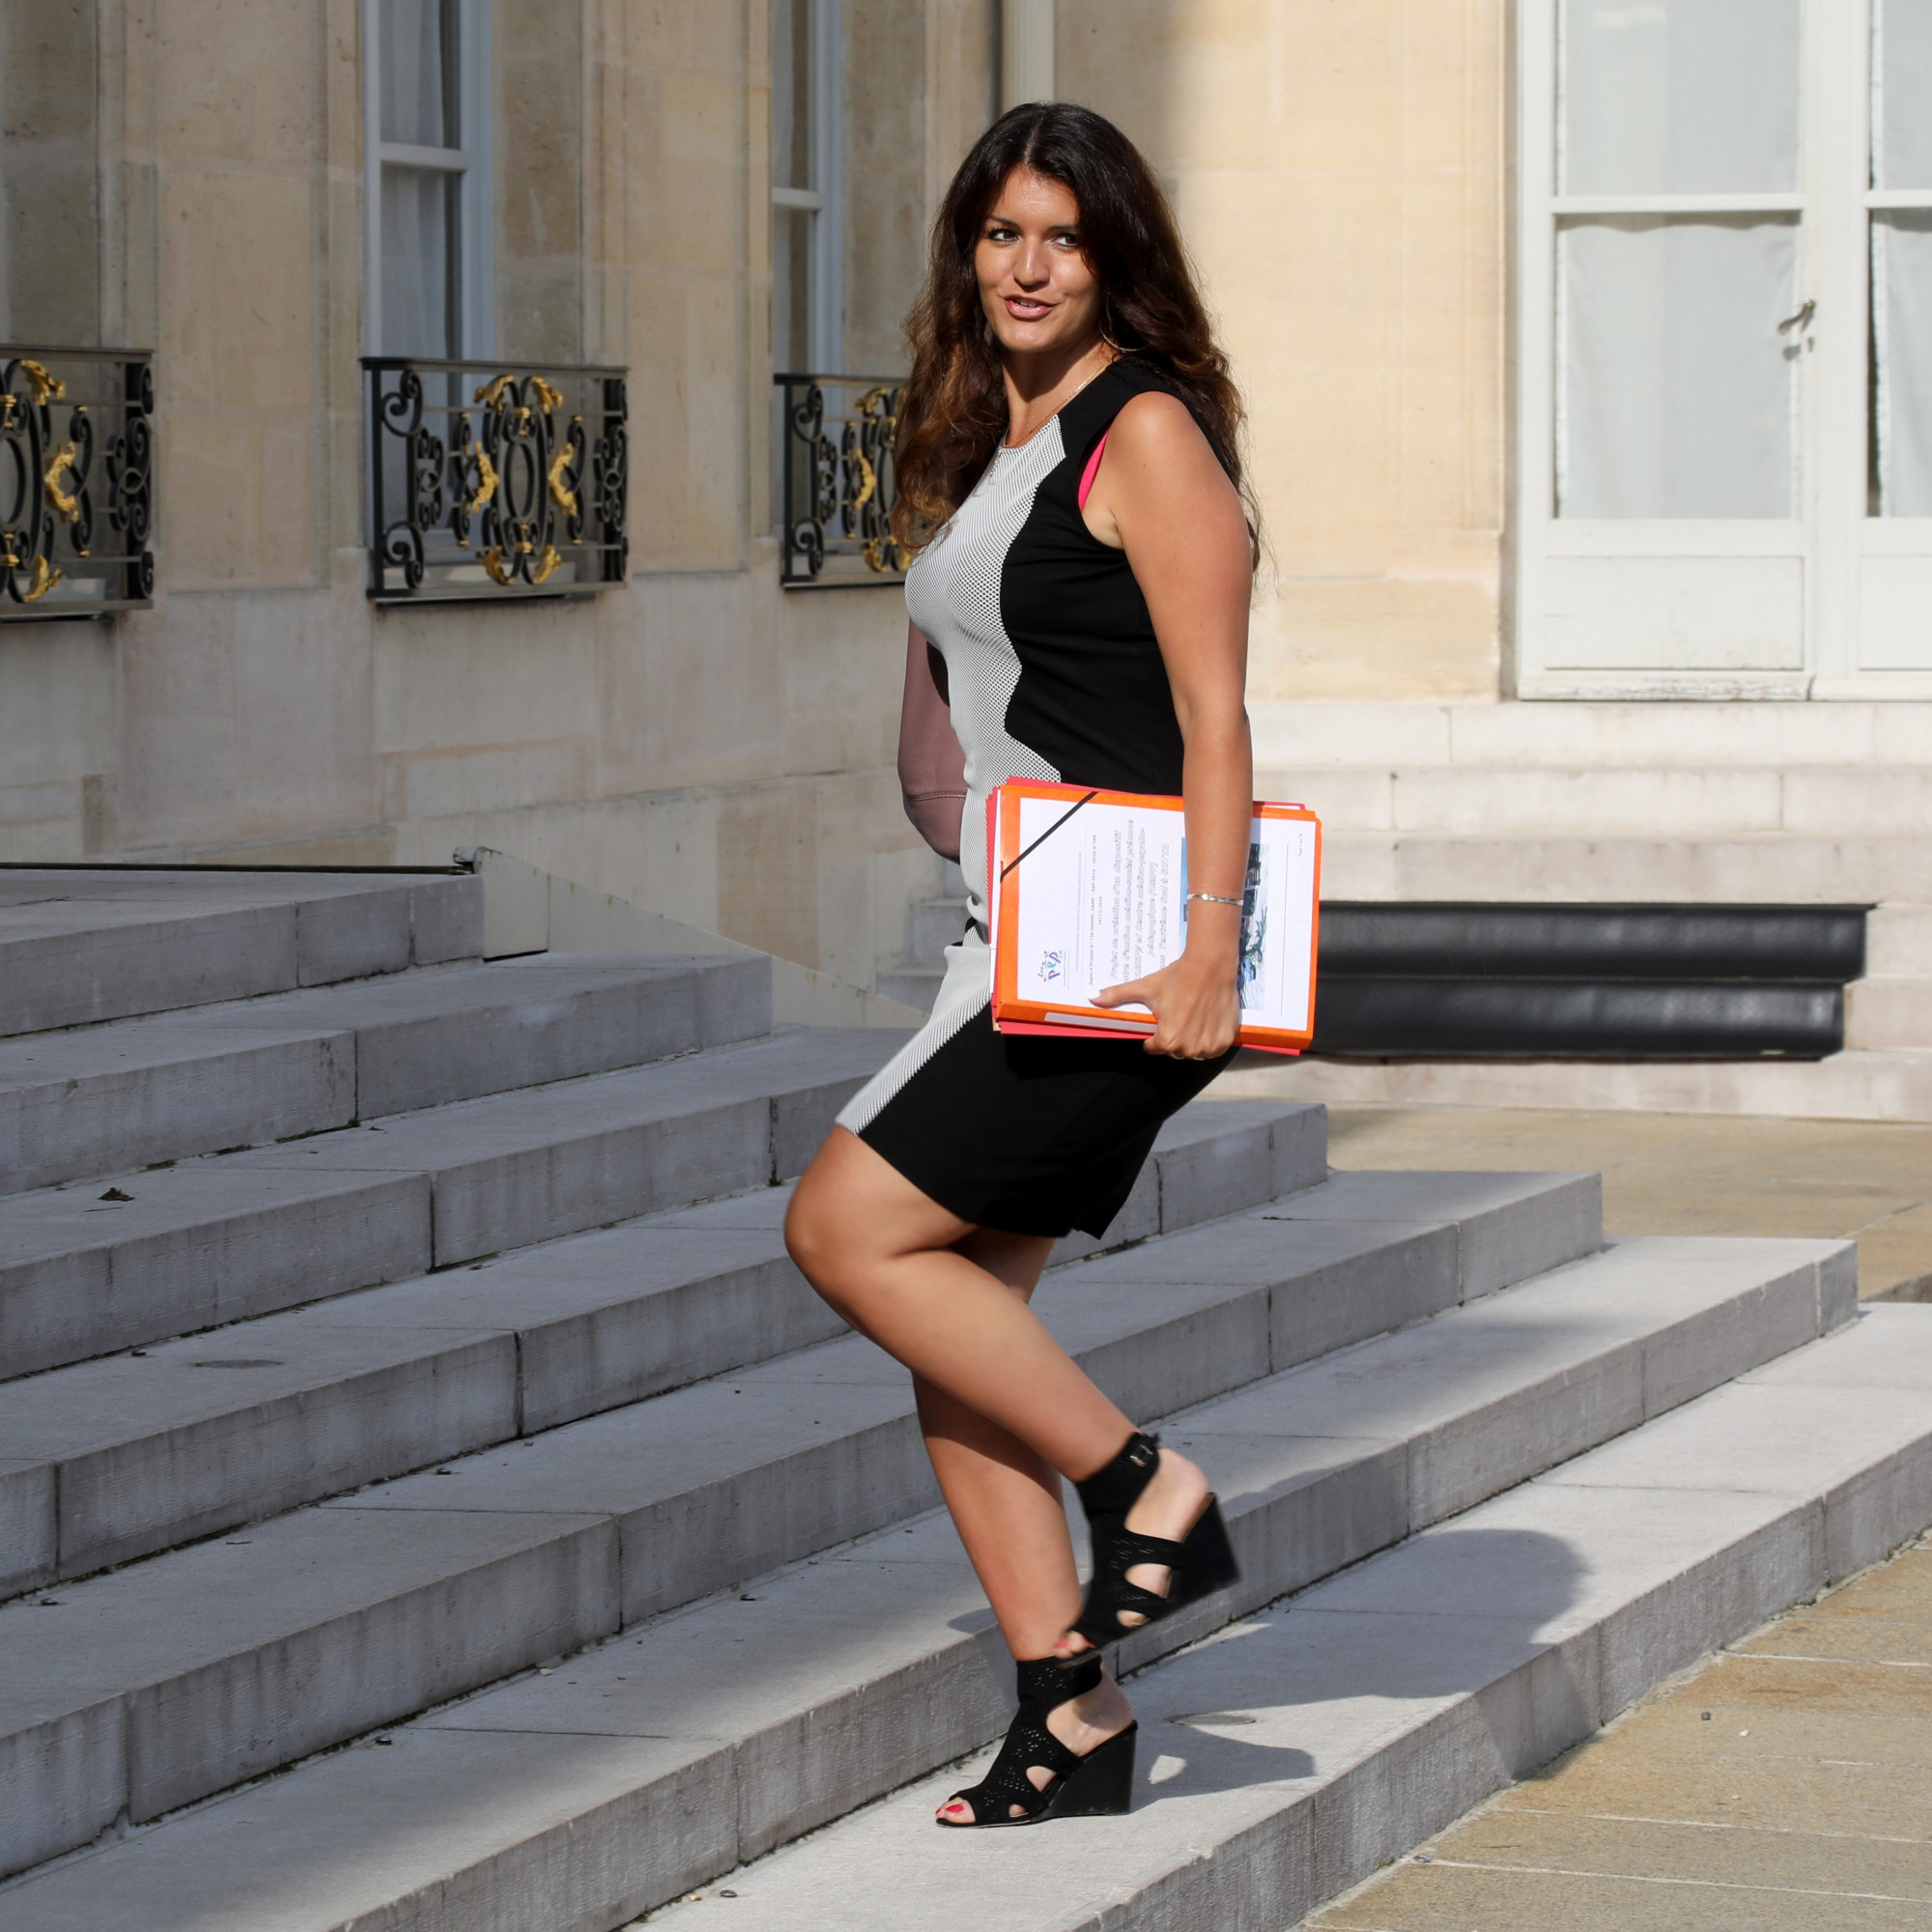 RIP CLIVE 1263773-marlene-schiappa-le-28-aout-2017-a-l-elysee